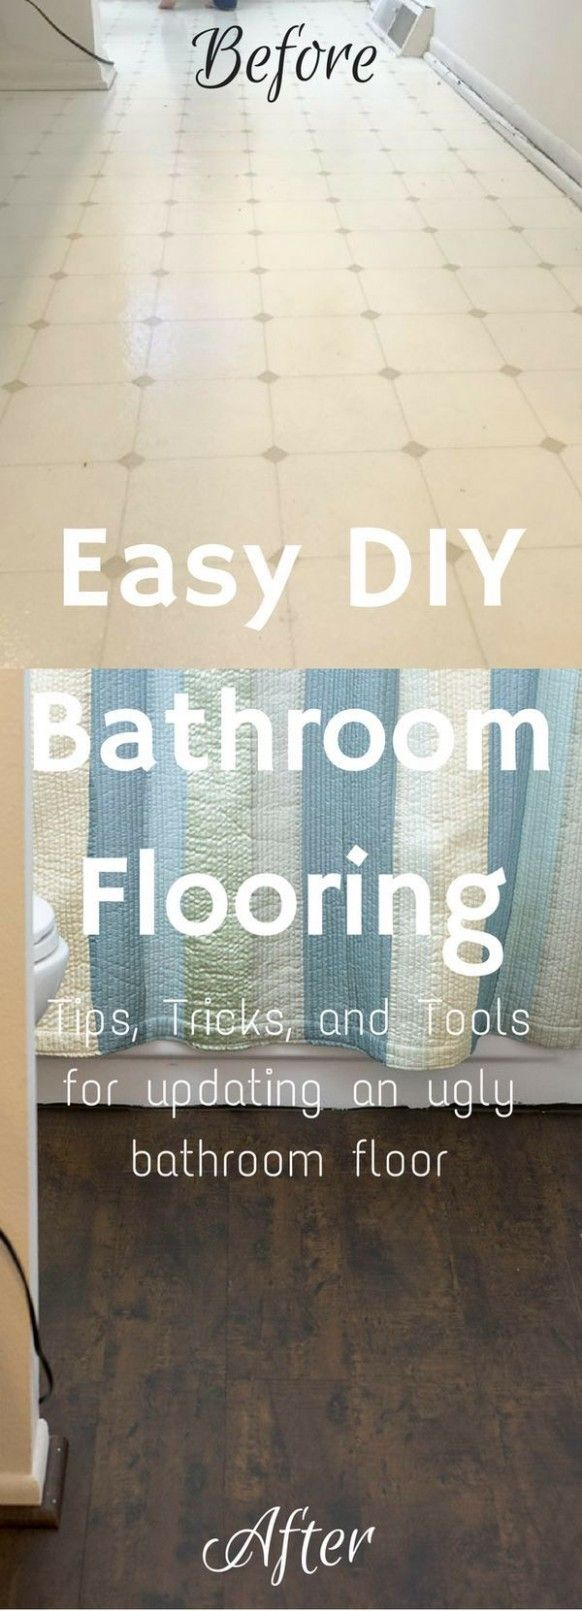 Easy Bathroom Floor Ideas Thanks for actuality a approved ...